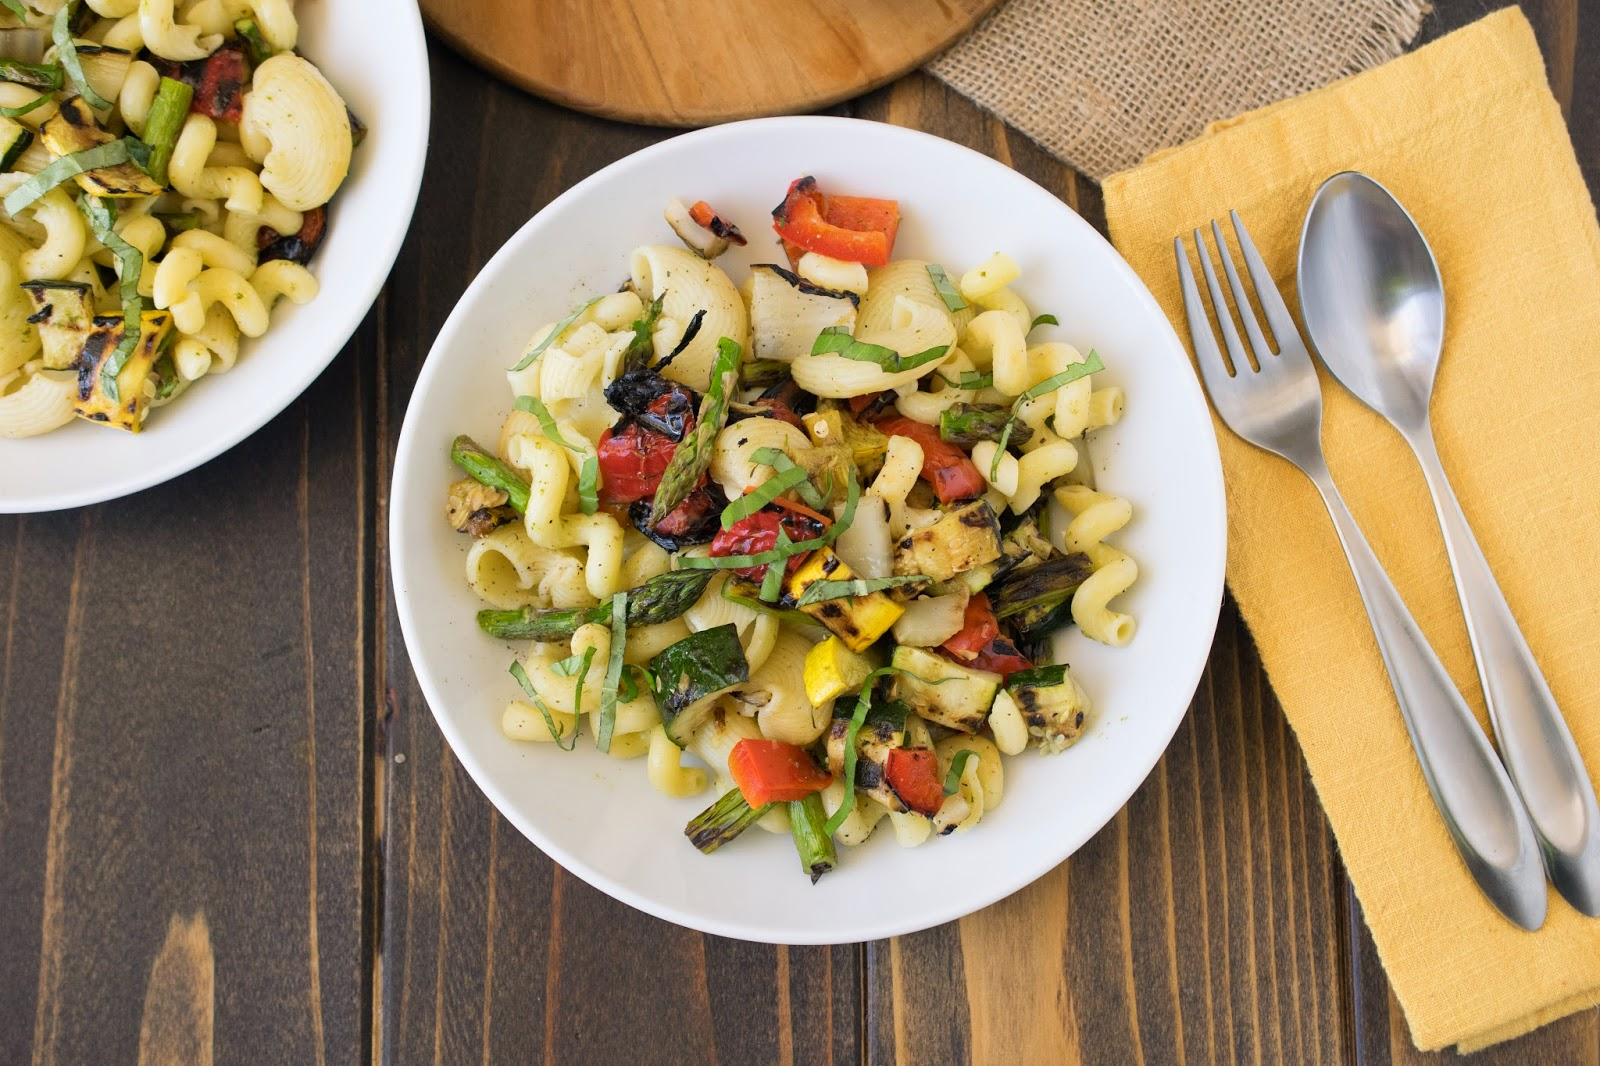 Grilled Spring vegetable pasta salad in a white bowl with a fork and spoon and a gold napkin